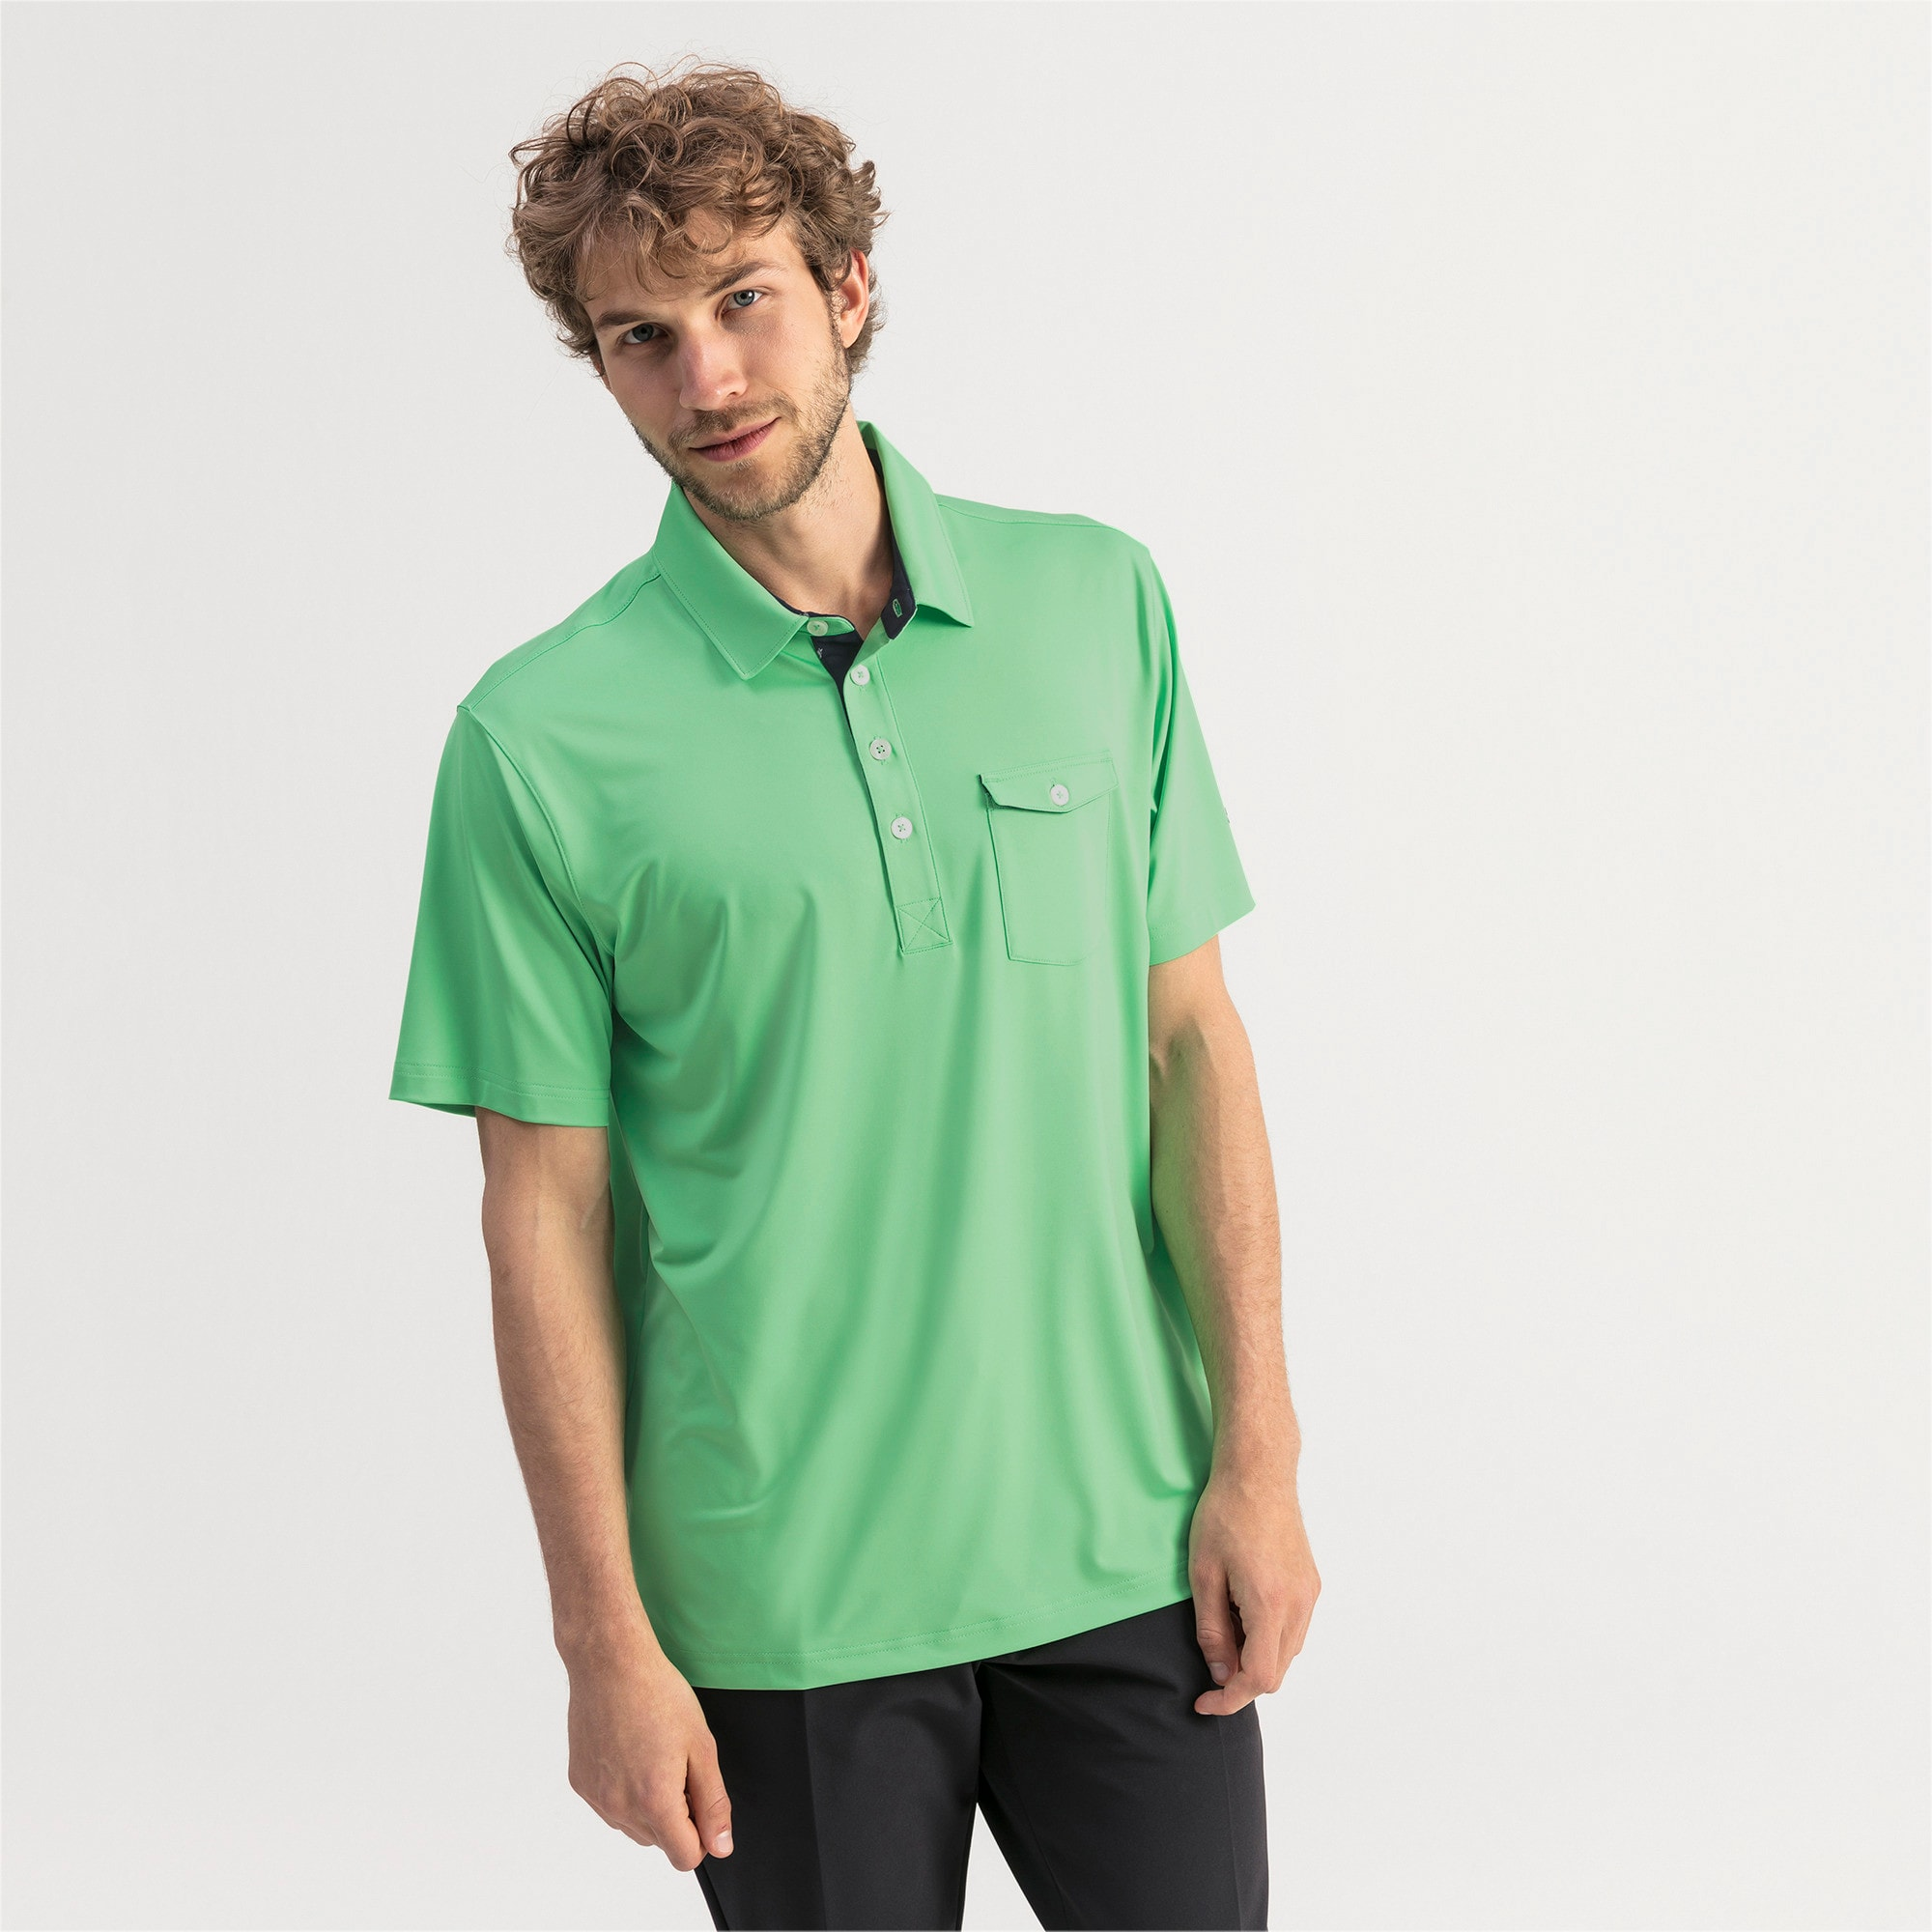 Thumbnail 1 of Donegal Men's Golf Polo, Irish Green, medium